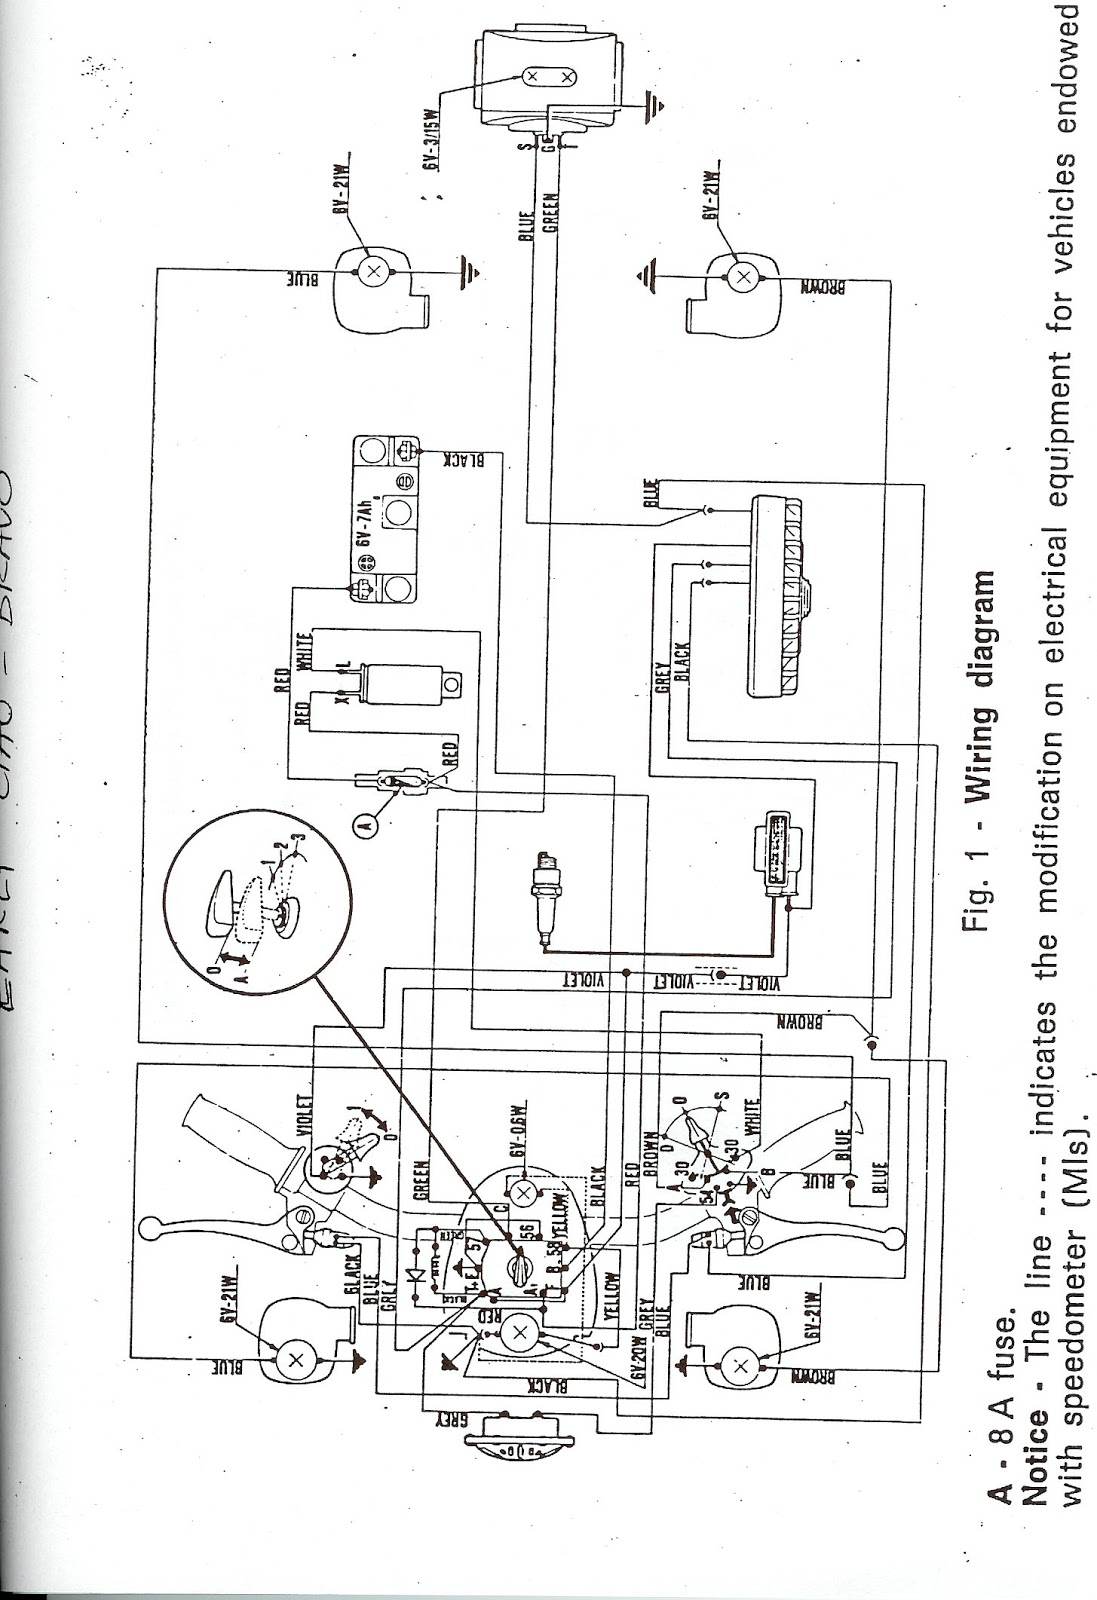 1149484169_vespa_early_ciao_bravo deadped vespa wiring in a nutshell vespa wiring diagram at edmiracle.co